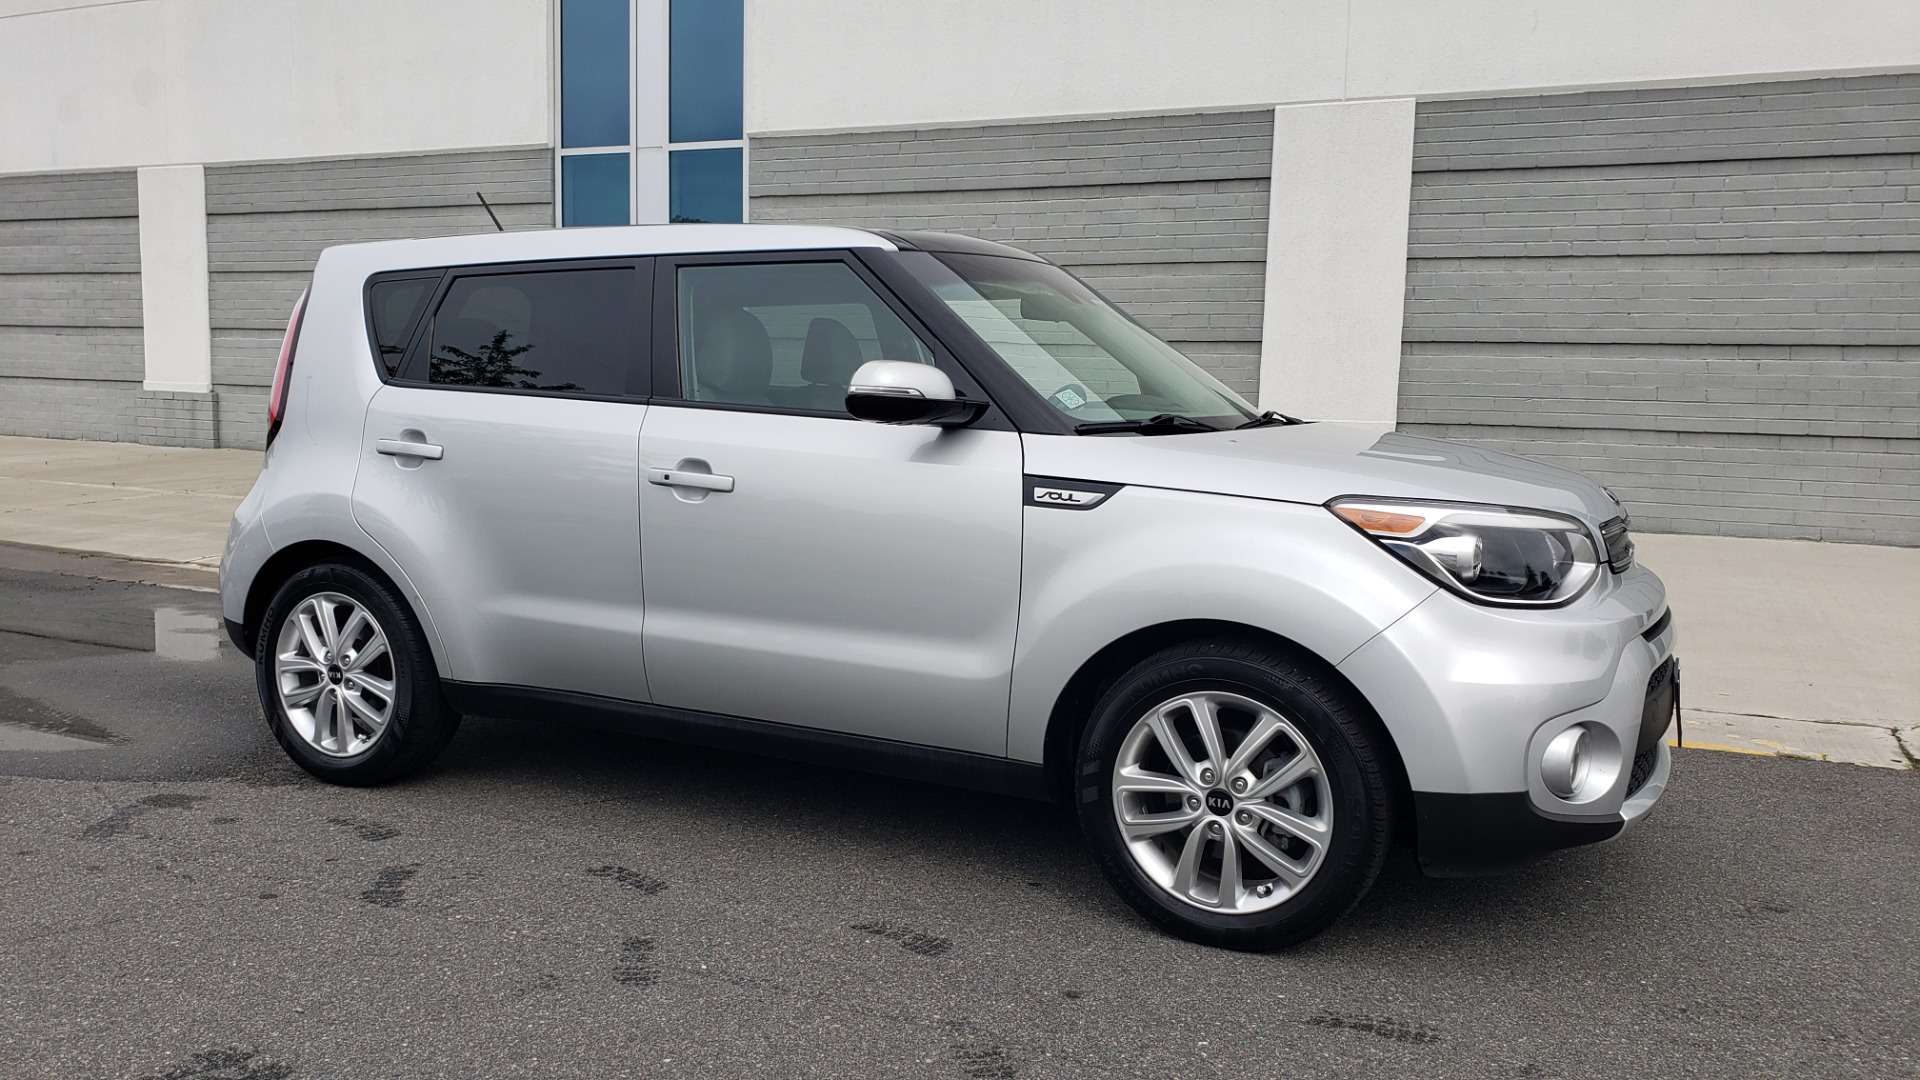 Used 2017 Kia SOUL PLUS / NAV / SUNROOF / LEATHER / HTD STS / REARVIEW for sale $16,995 at Formula Imports in Charlotte NC 28227 2